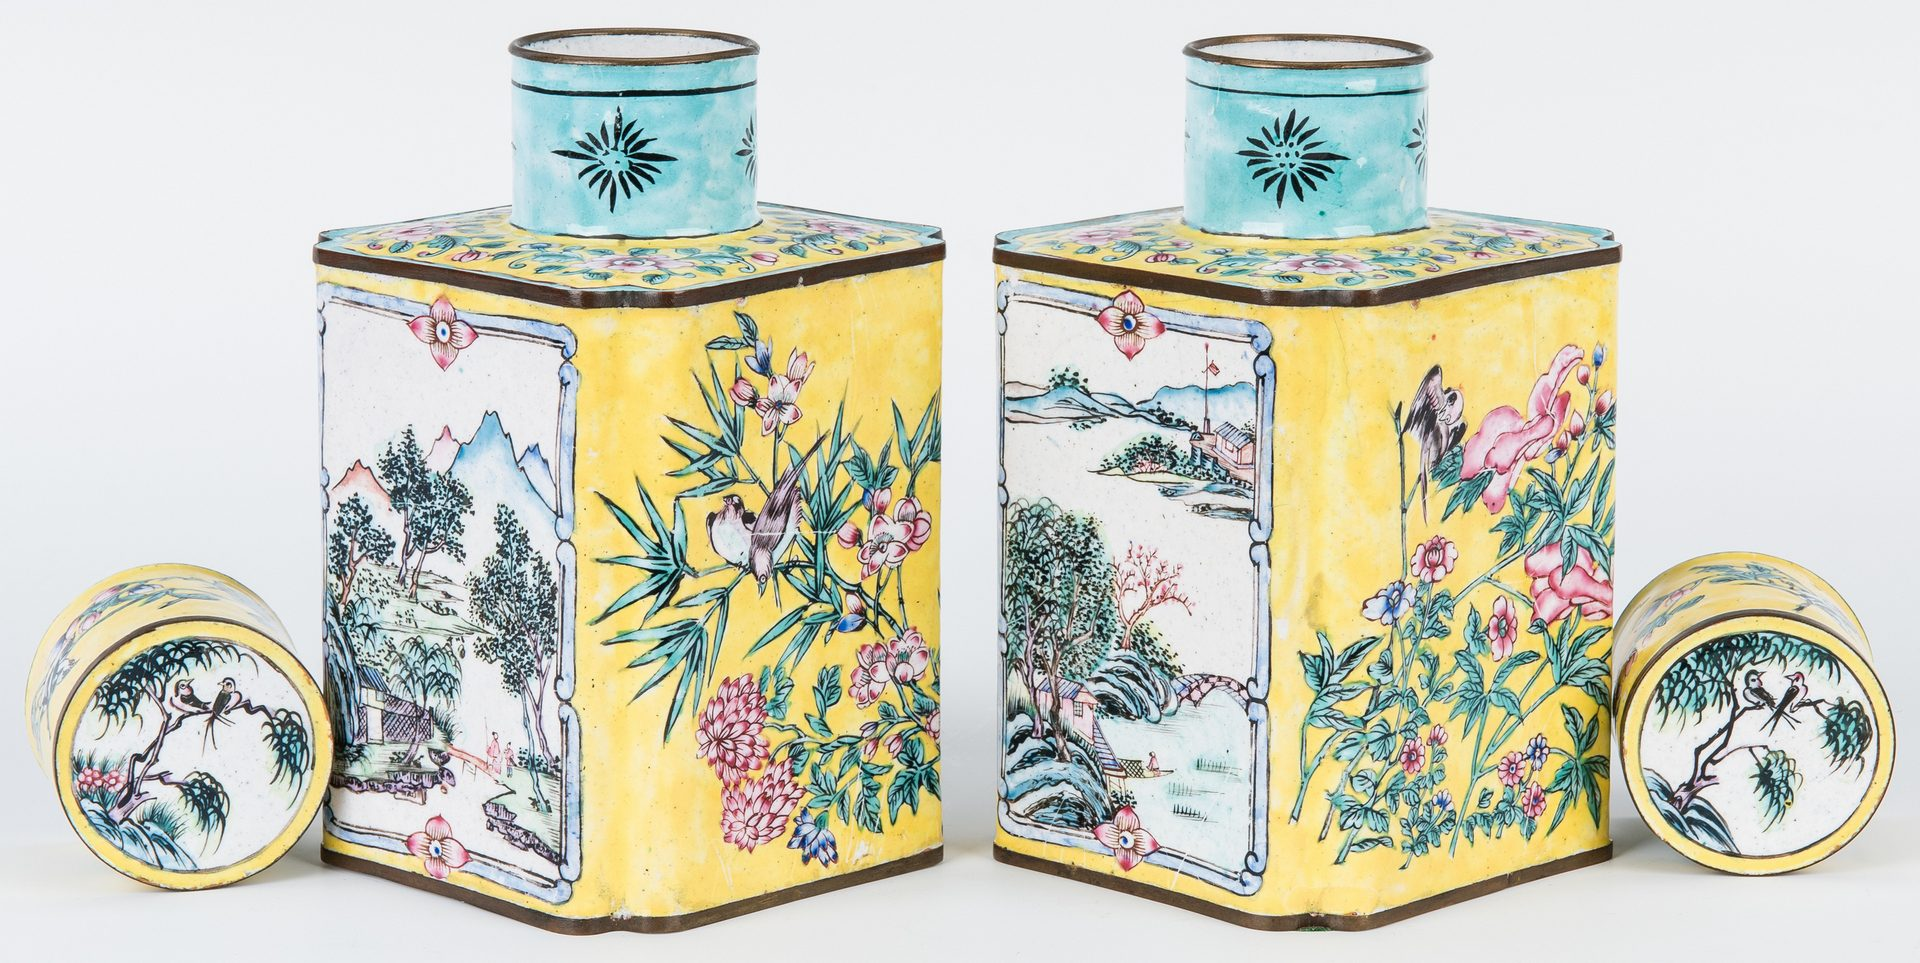 Lot 1: Pair of Chinese Enamel Tea Caddies